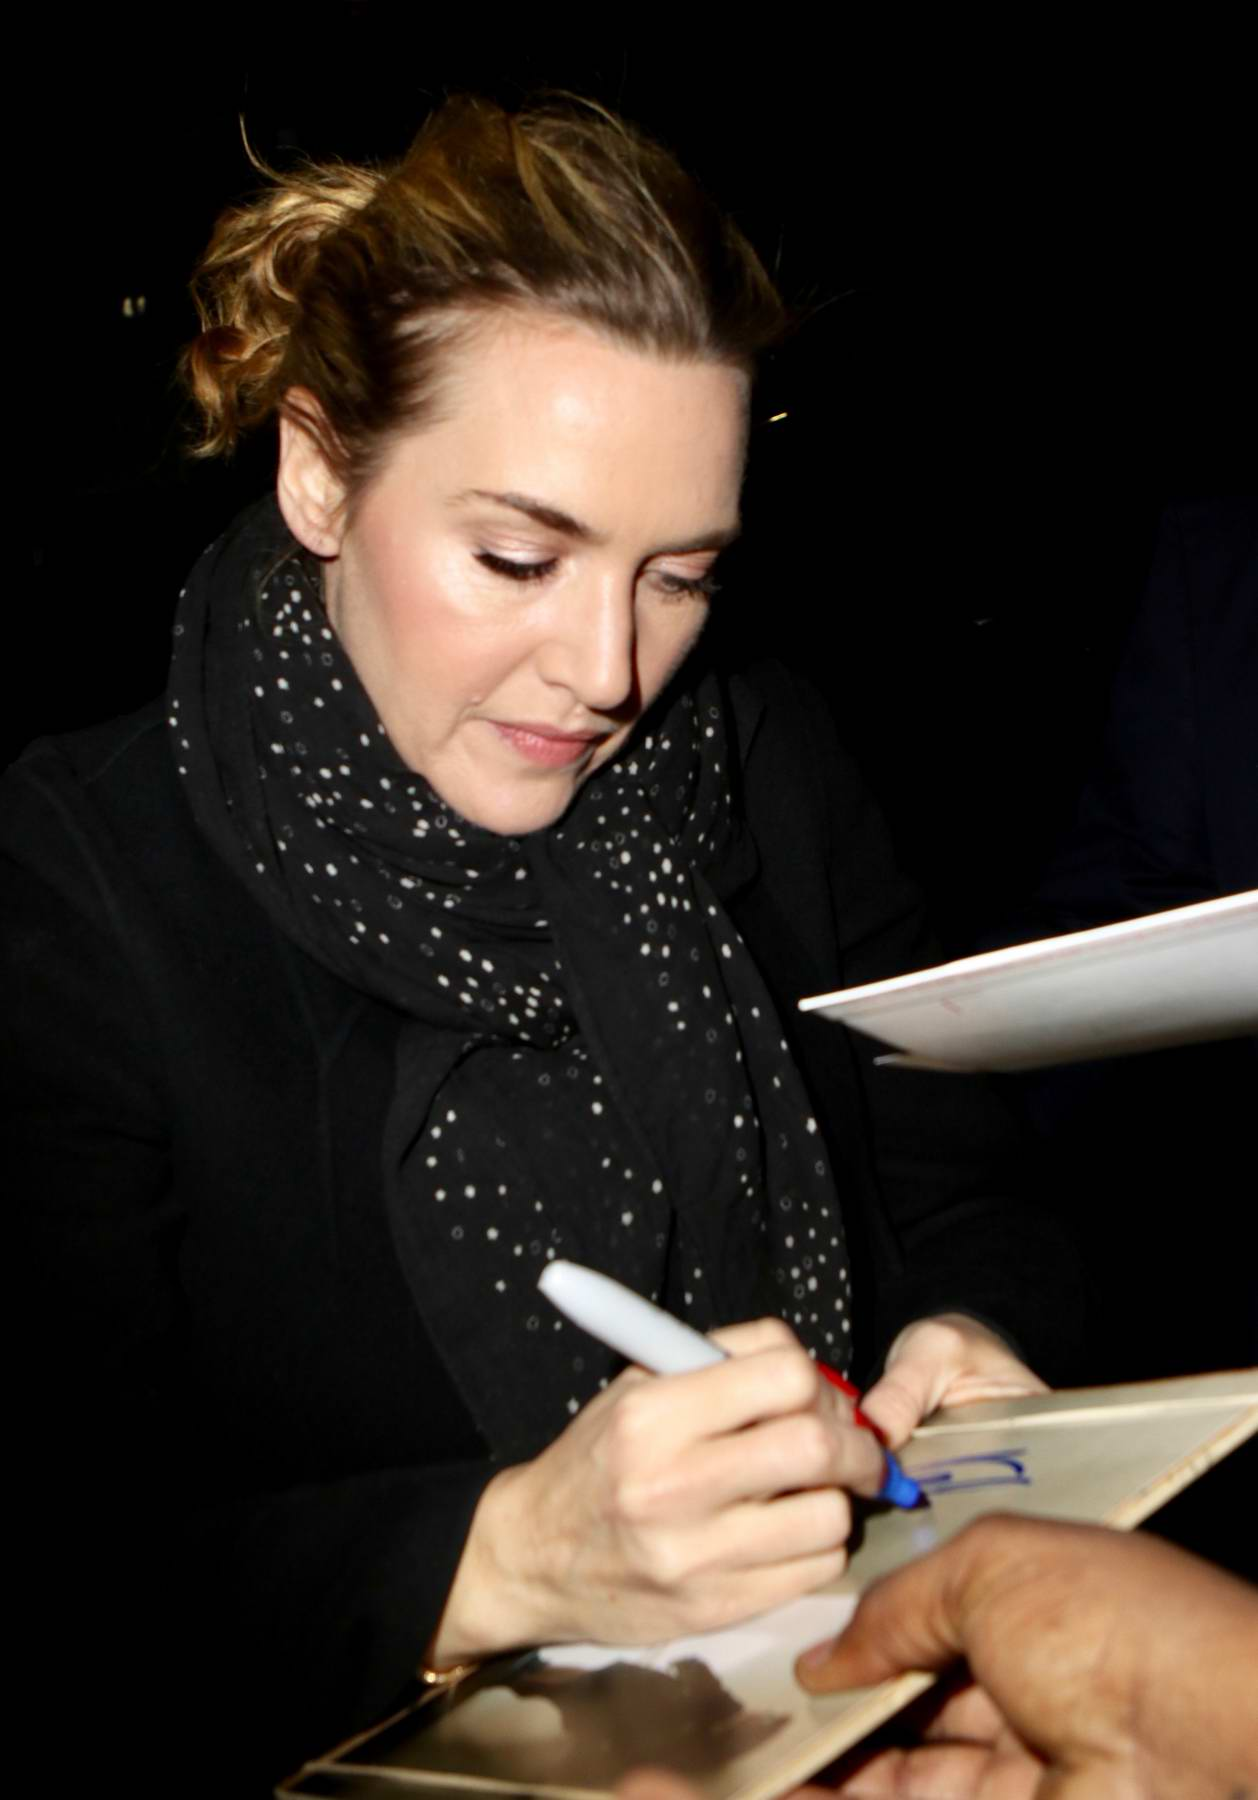 Kate Winslet greet her fans as she leaves The Late Show With Stephen Colbert in New York